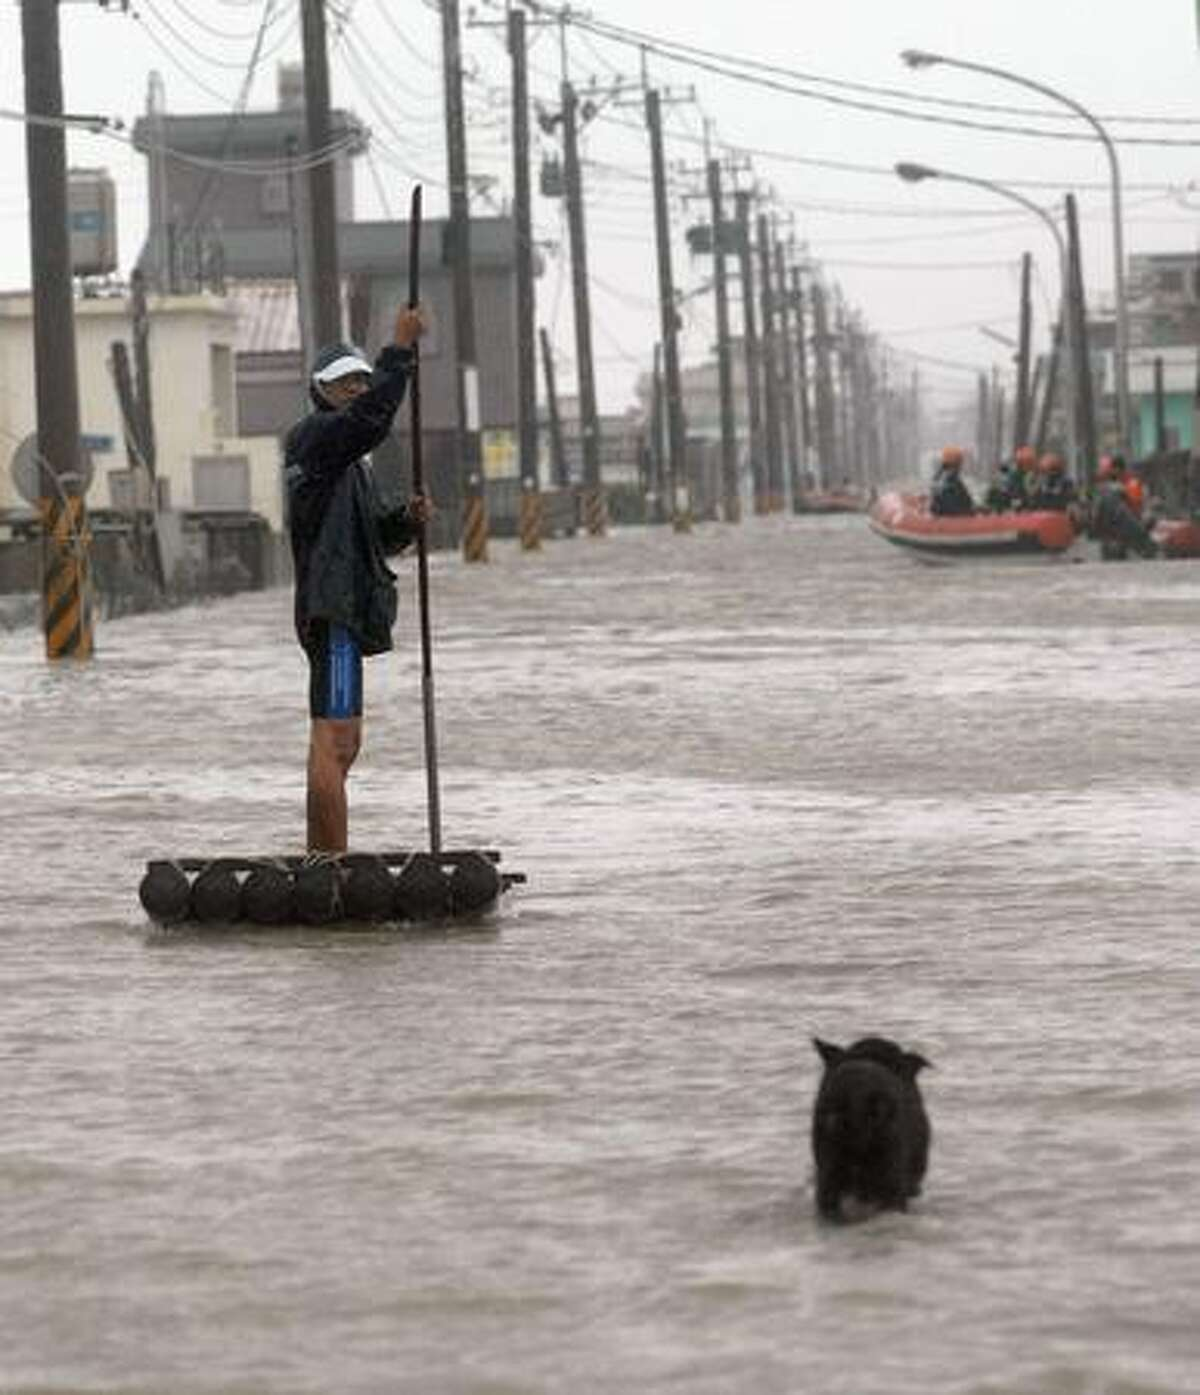 A man uses a makeshift raft to maneuver through the flooding brought by Typhoon Morakot in Chiatung, Pingtung county, in southern Taiwan, on Sunday. One person was killed and eight were missing and feared dead in Taiwan as Typhoon Morakot lashed the island with powerful winds and downpours, rescuers said on August 8.